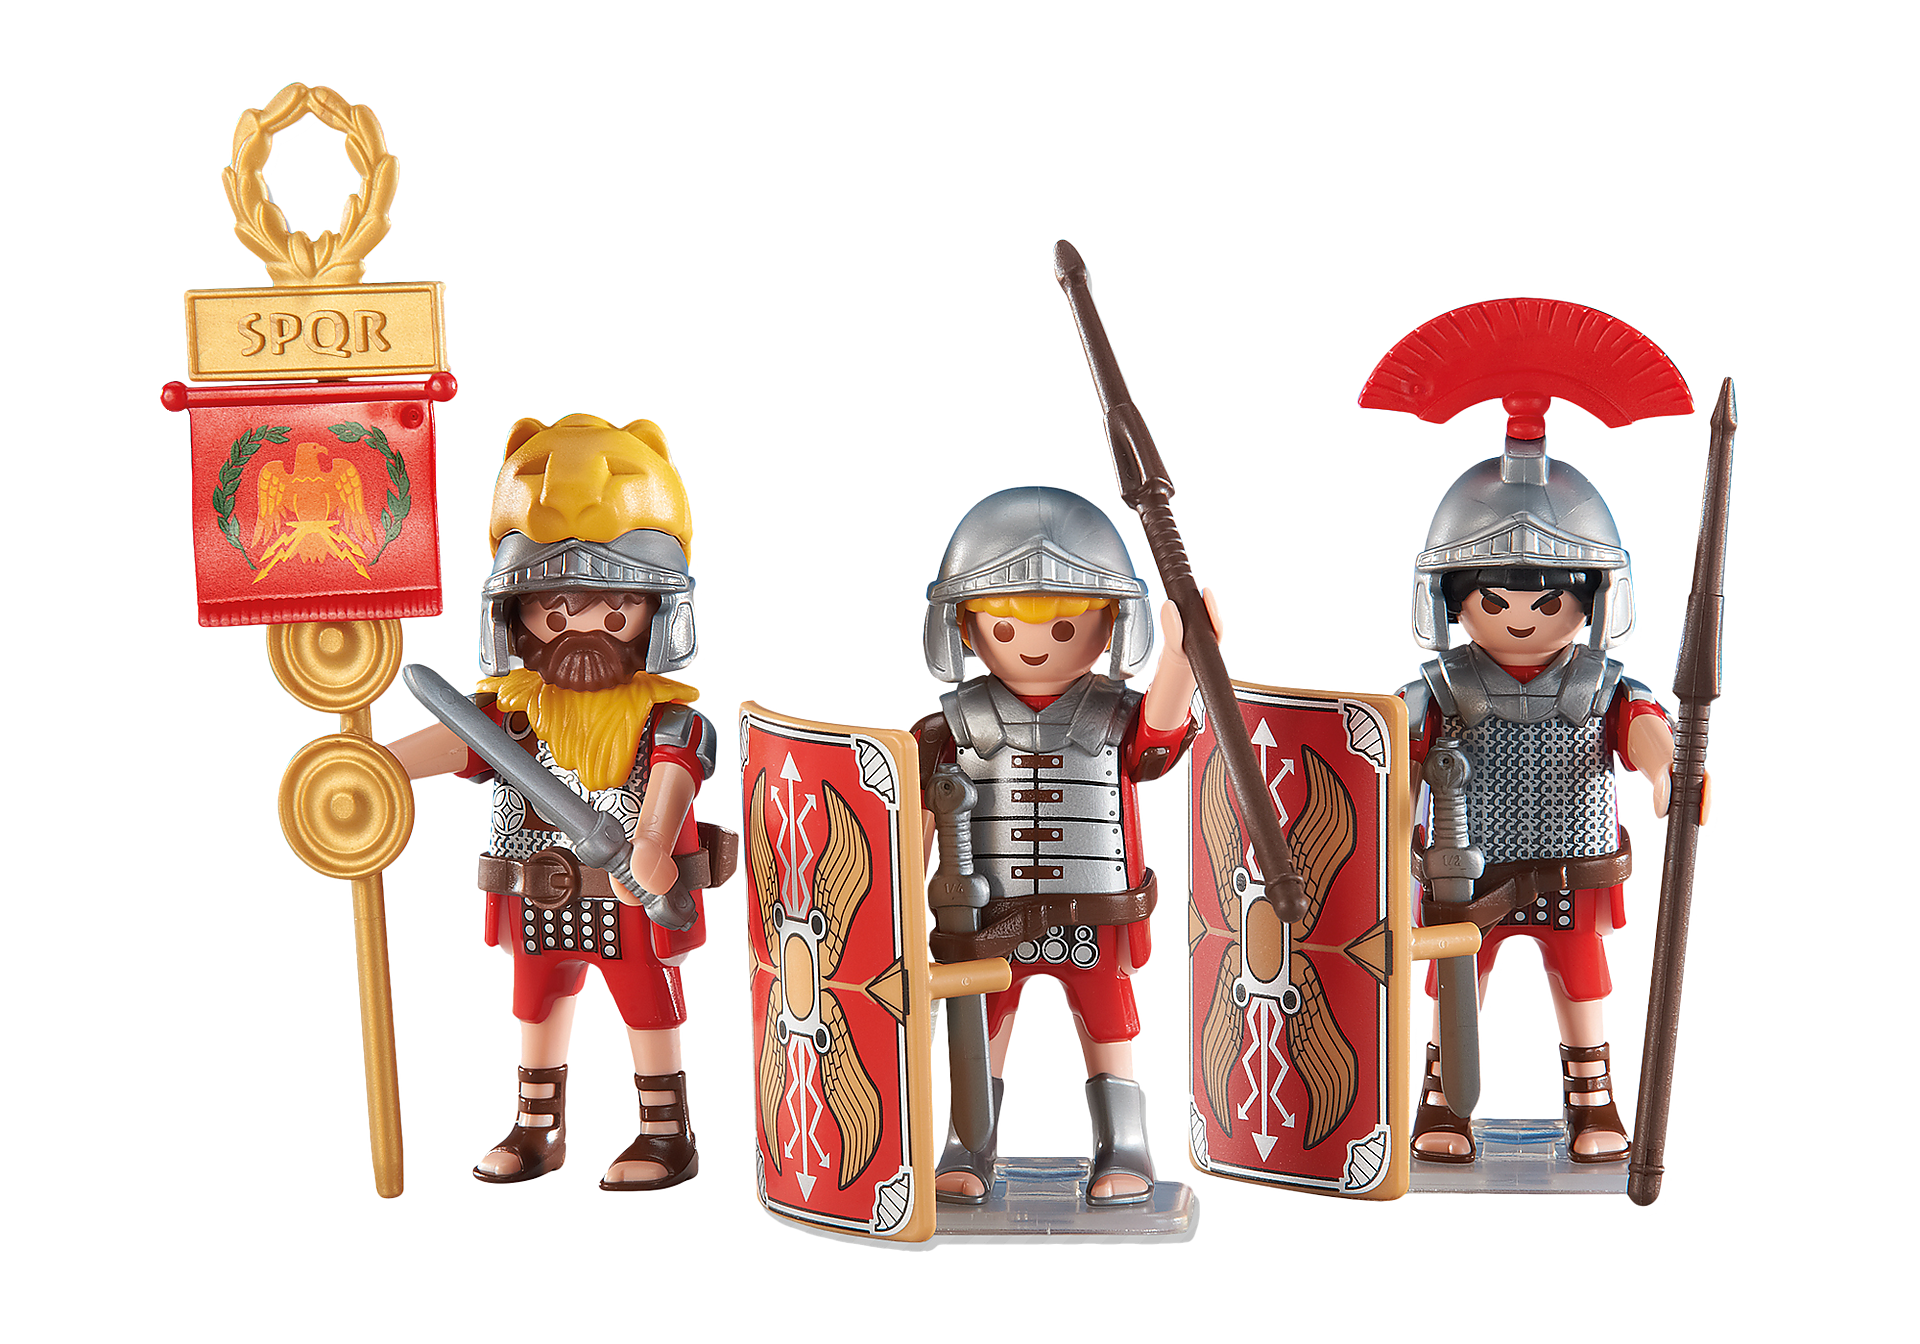 http://media.playmobil.com/i/playmobil/6490_product_detail/3 legionari